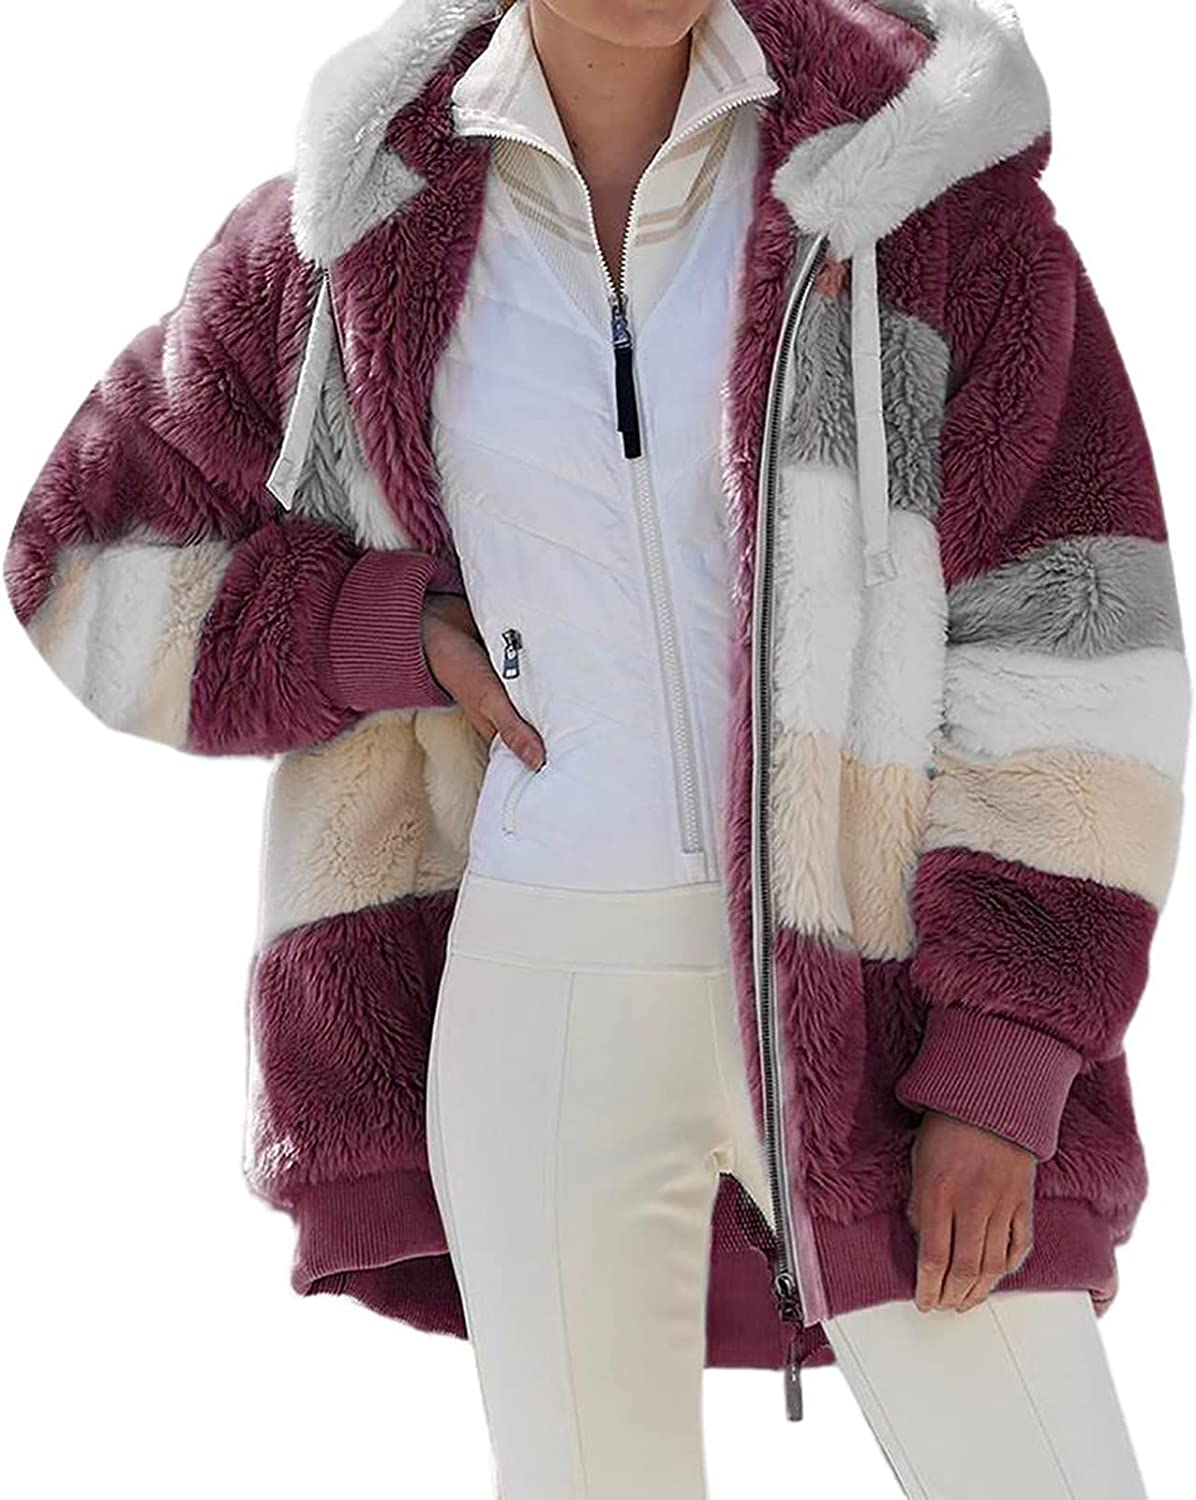 Women's Fashion Long Sleeve Jacket Faux Fur Hooded Sweater Coat Contrast Color Shaggy Zip Up Outwear Tops with Pockets